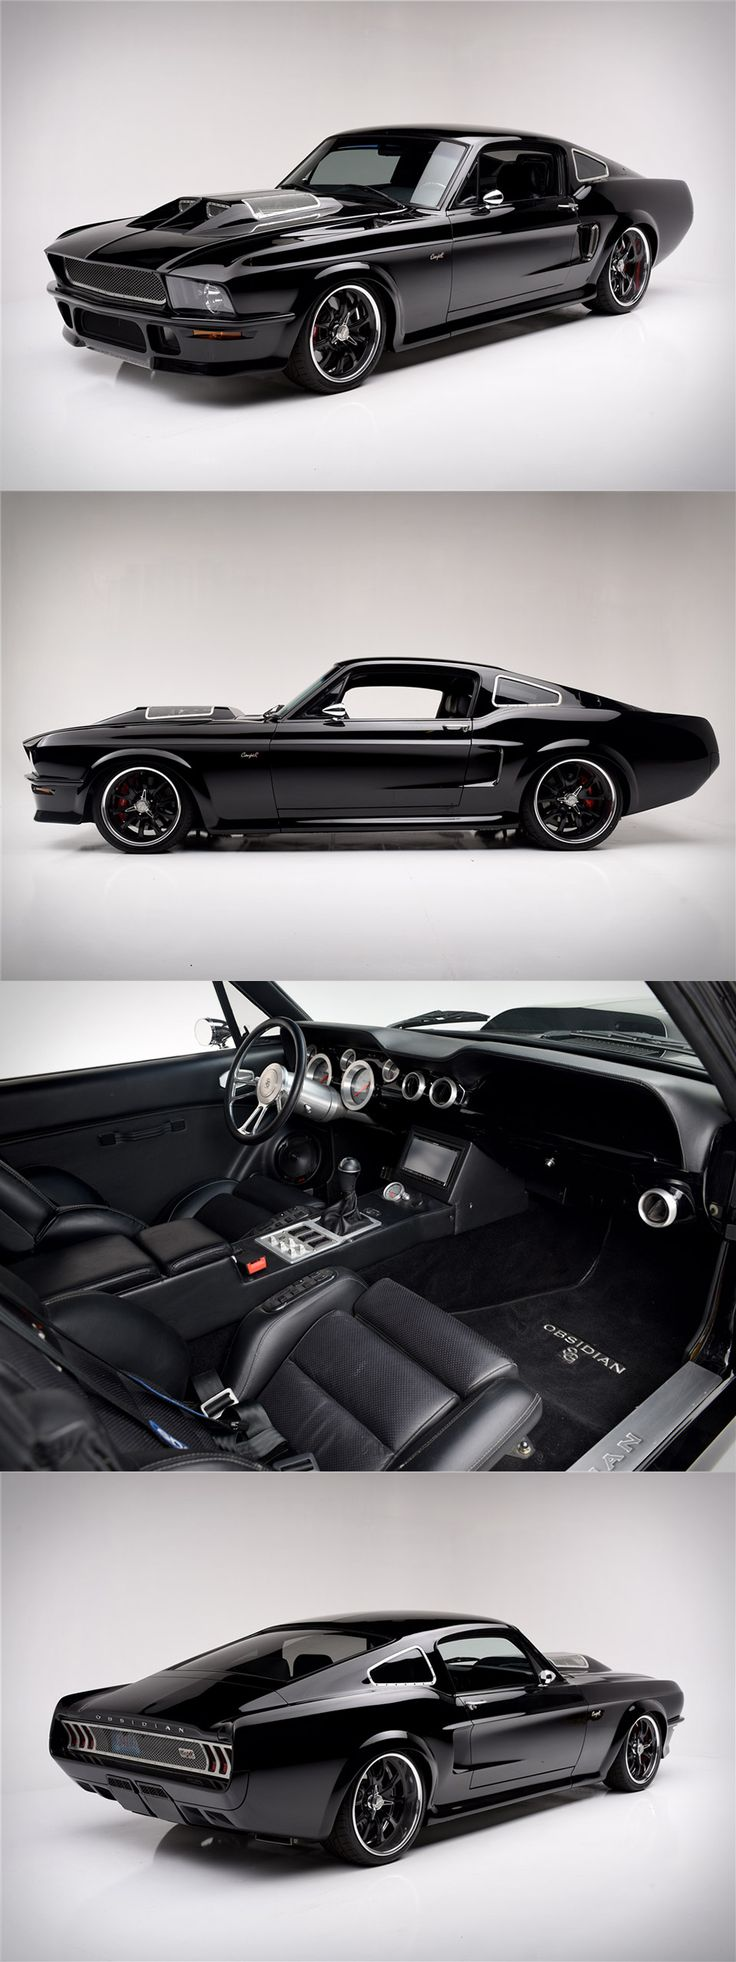 obsidian 1967 ford mustang supercharged fastback